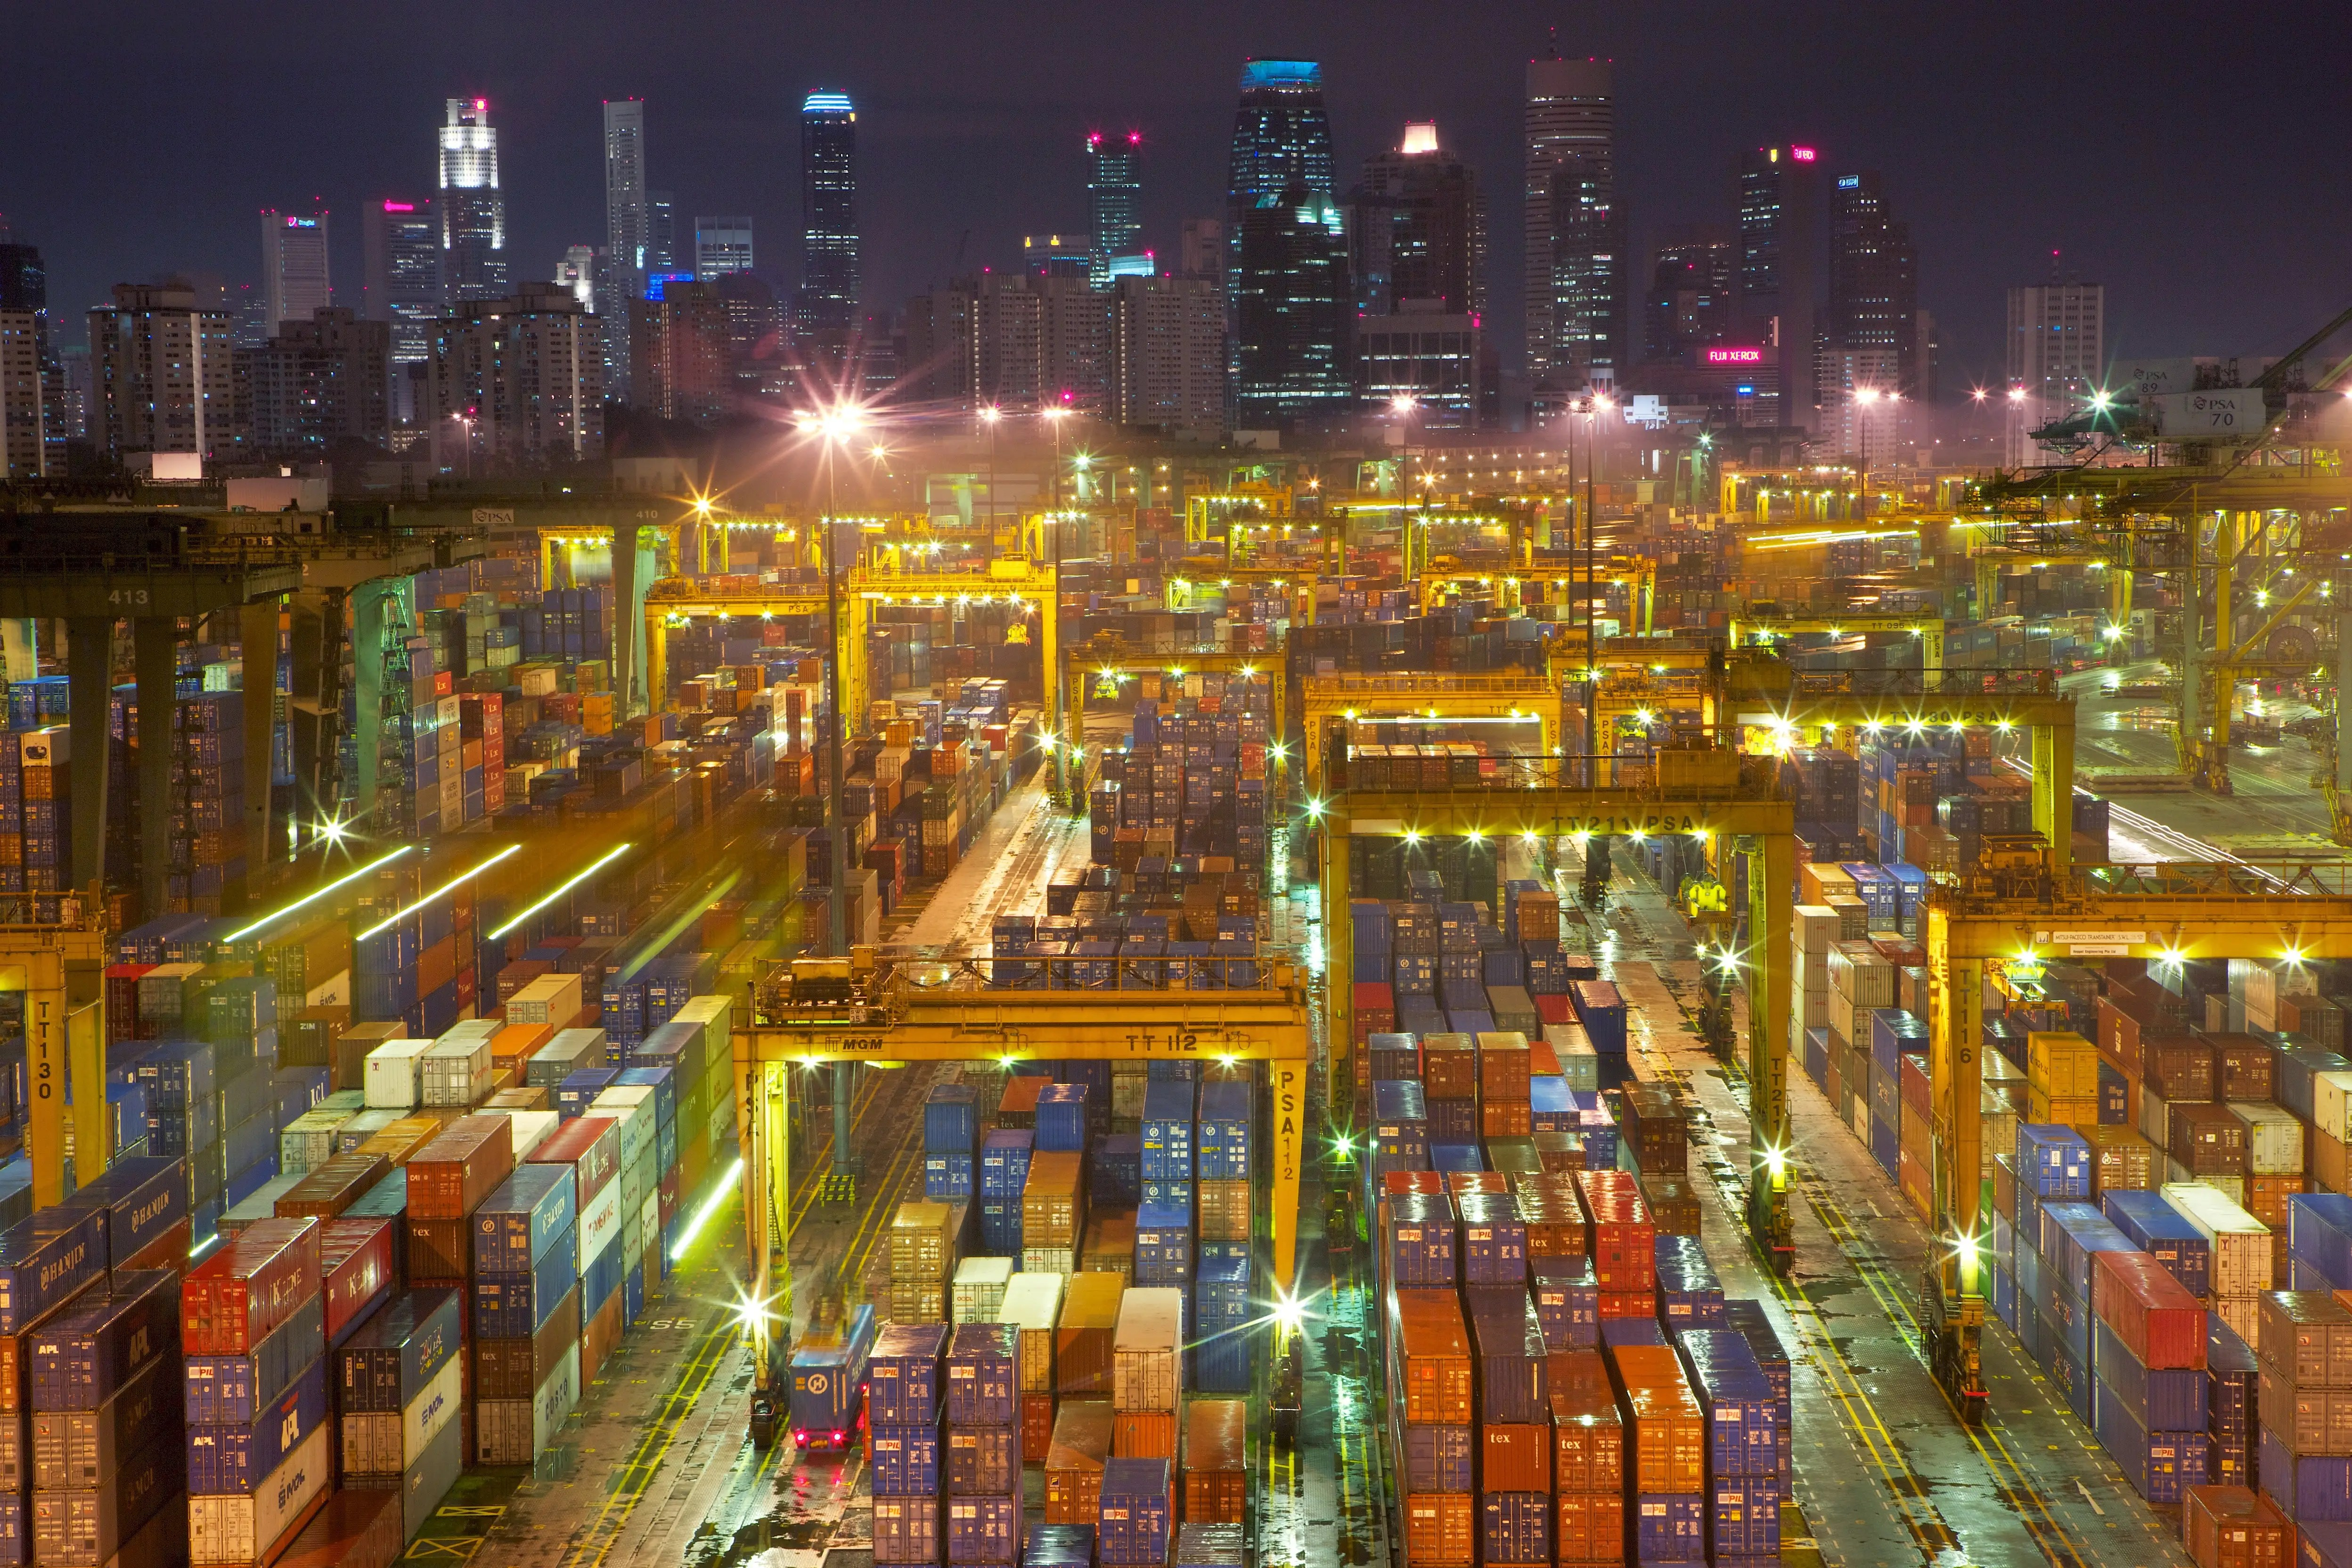 Shipping containers, indispensable tool of the globalized consumer economy, reflect the skyline in Singapore, the busiest transshipment port in the world and the second busiest in total shipping tonnage.